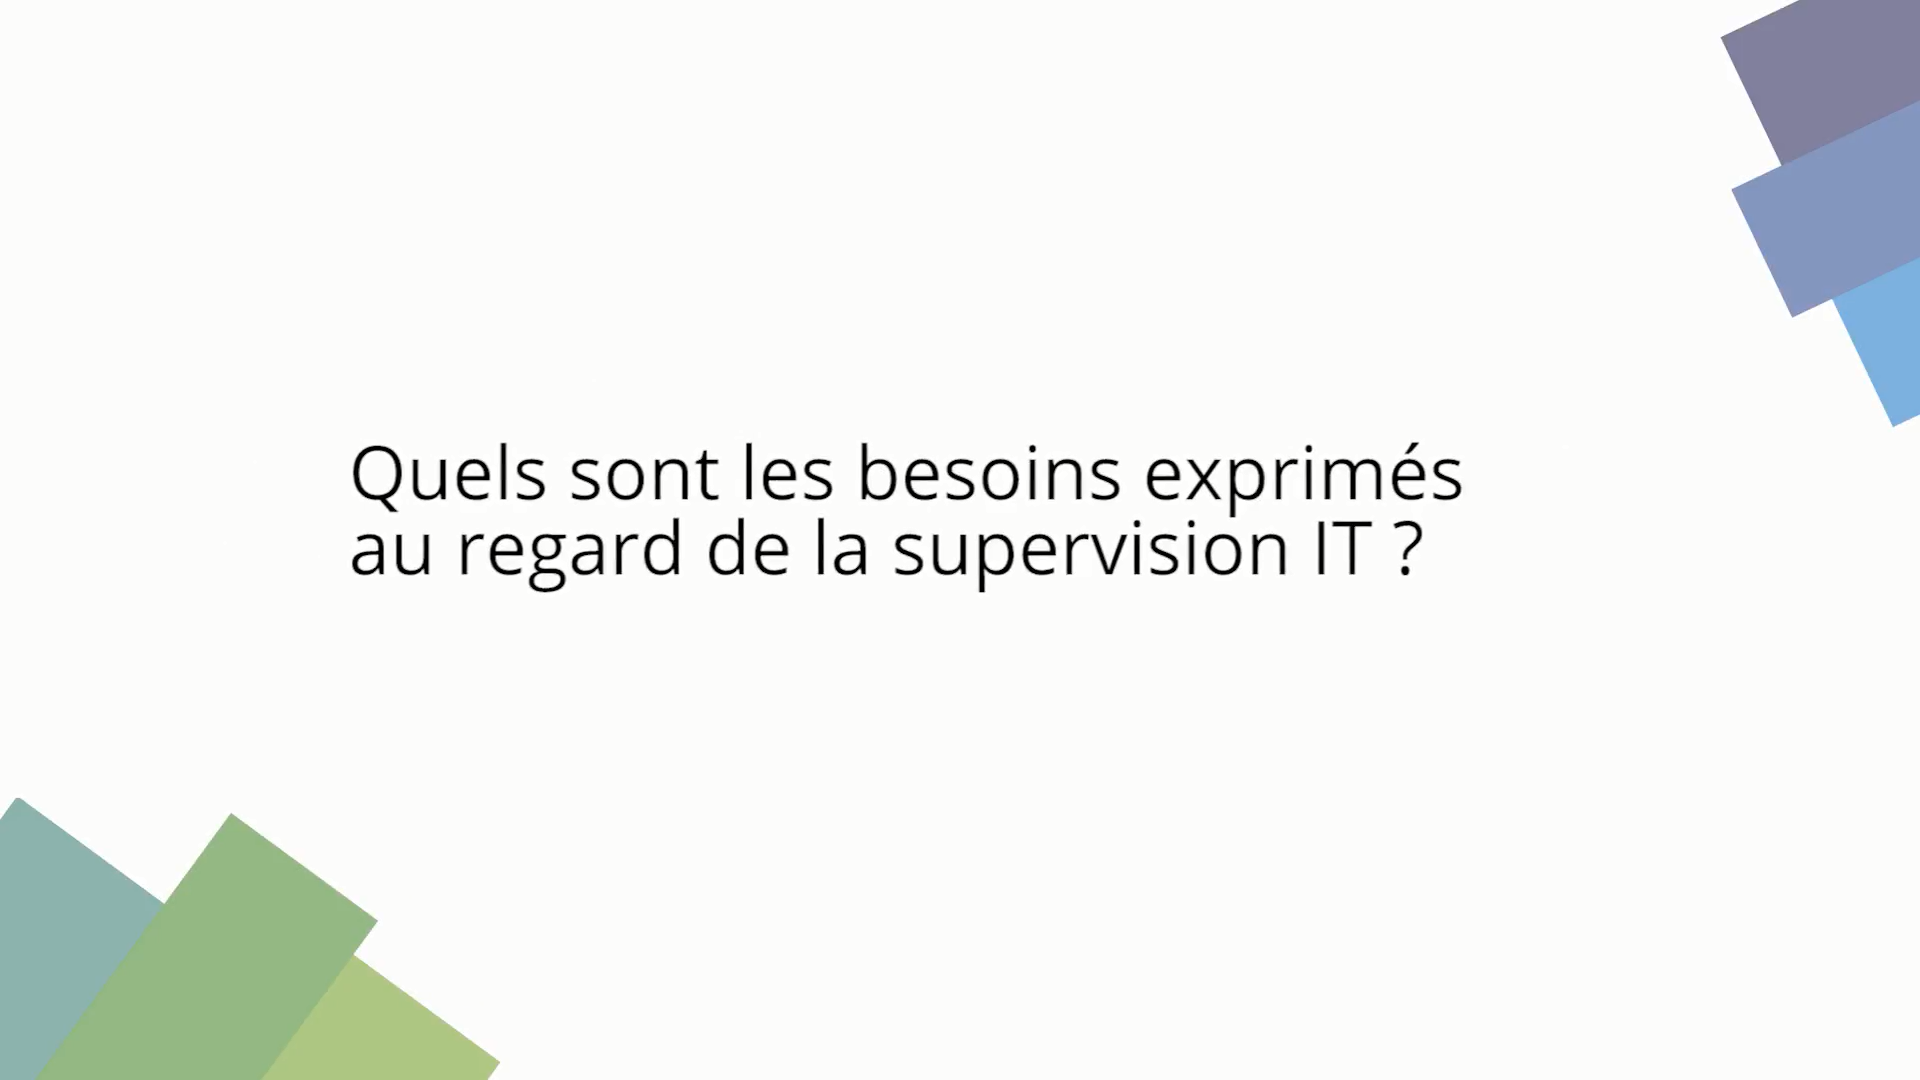 Cerntreon, supervision informatique